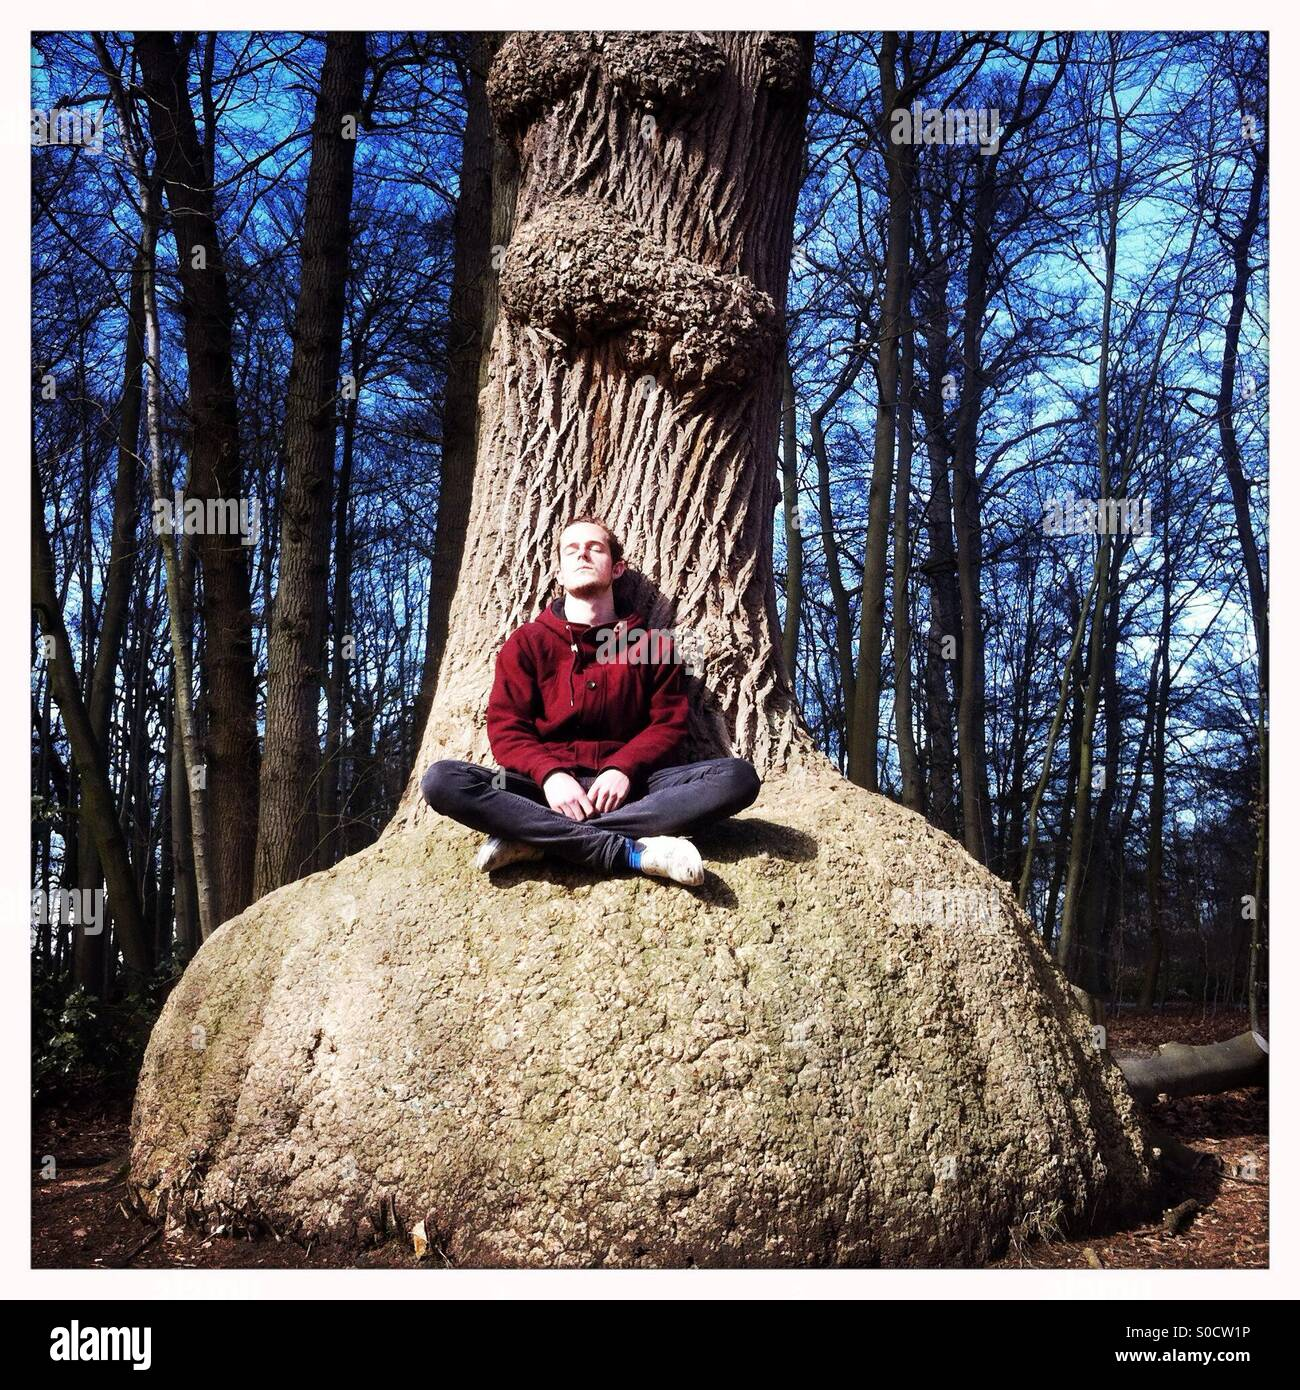 Young man meditating in a forest against a tree - Stock Image